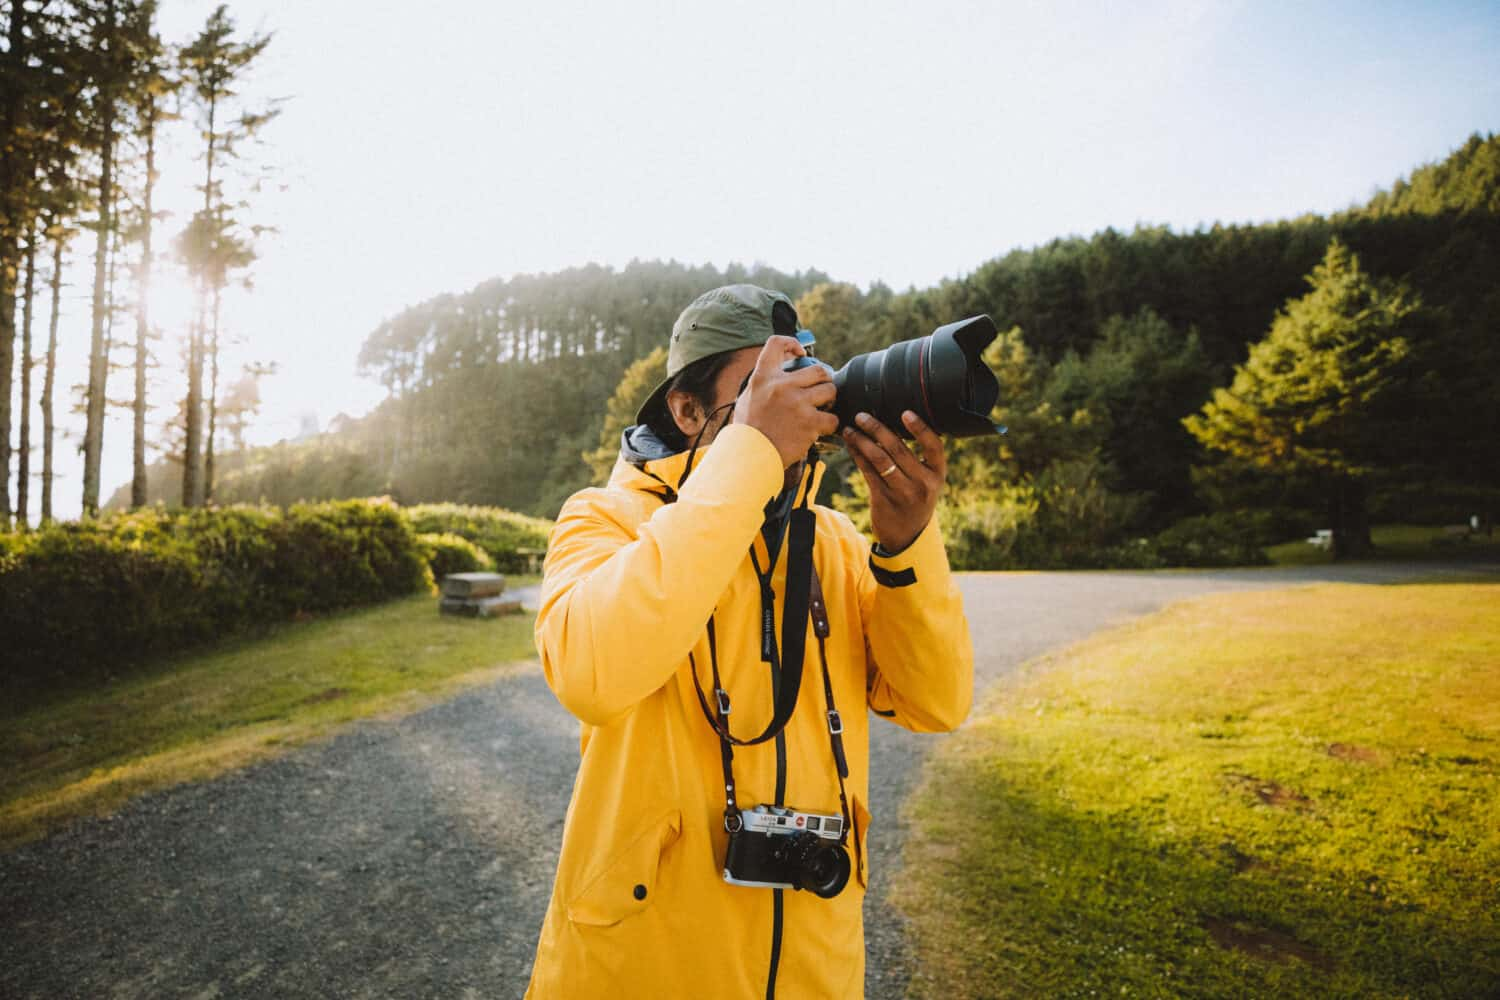 Berty Mandagie capturing beautiful photos of Oregon